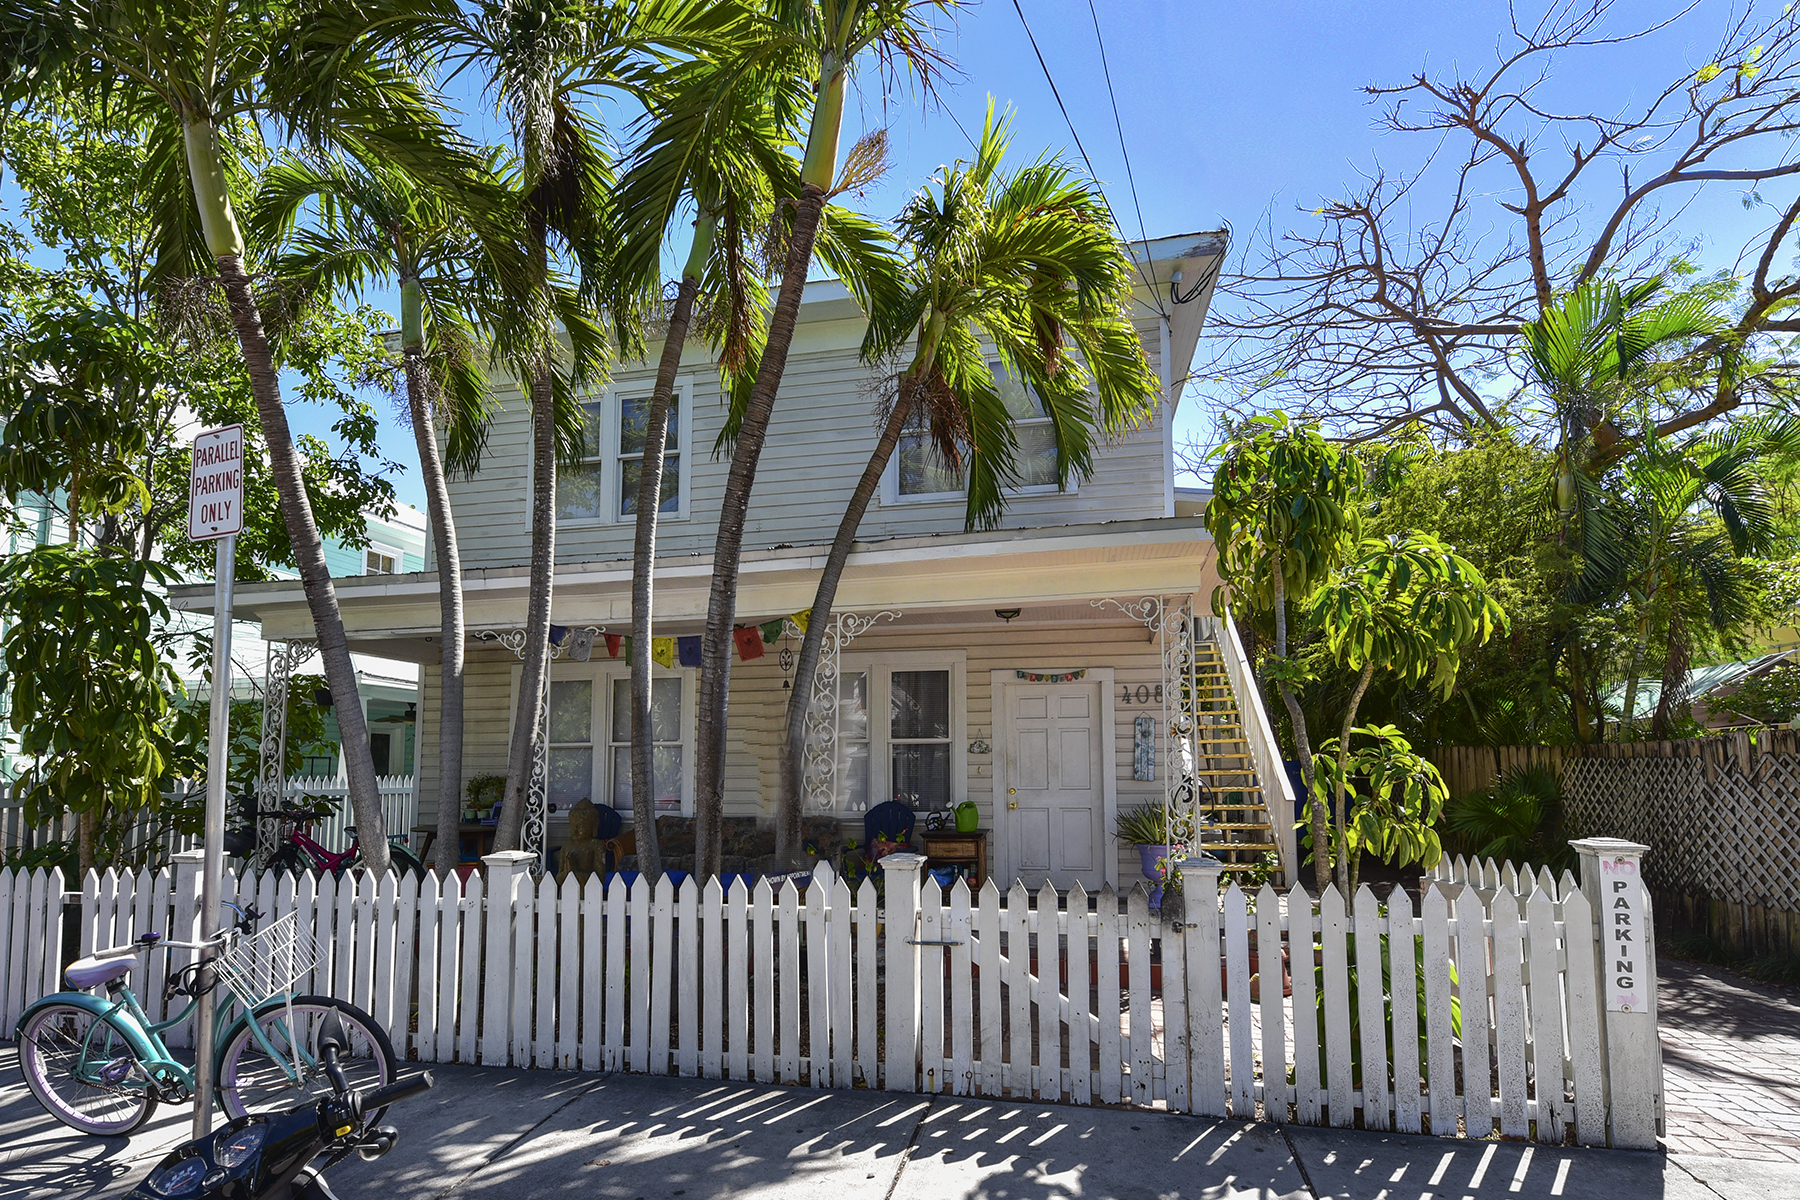 Dúplex por un Venta en Duplex in the Heart of Key West 408 Virginia Street Key West, Florida 33040 Estados Unidos